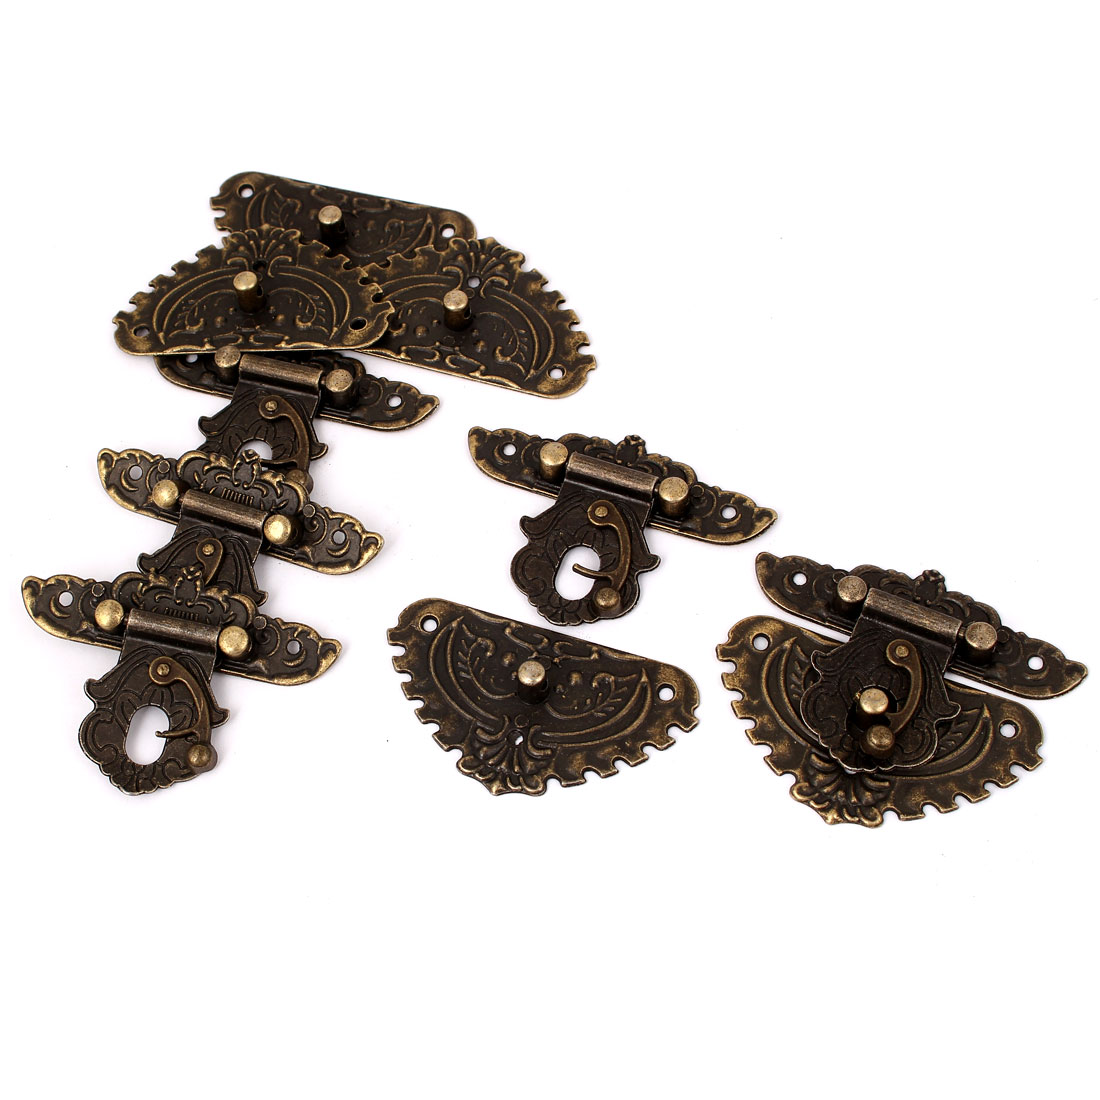 L237E5 Antique Style Wooden Case Chest Box Clasp Hasp Latches Bronze Tone 5pcs